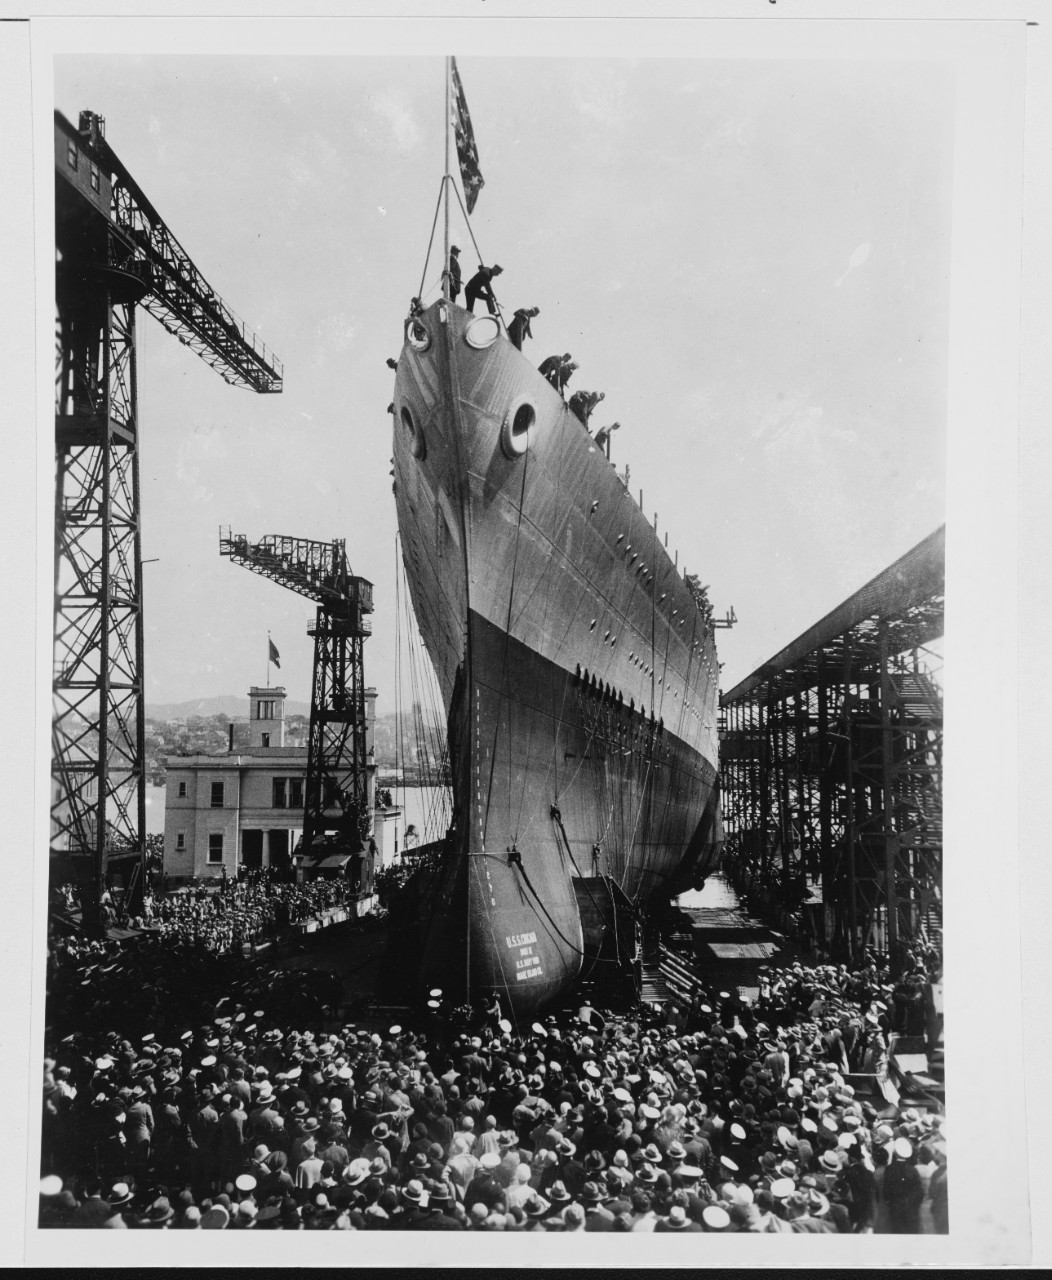 Chicago is launched at Mare Island Navy Yard, 10 April 1930. (Naval History and Heritage Command Photograph NH 70790)